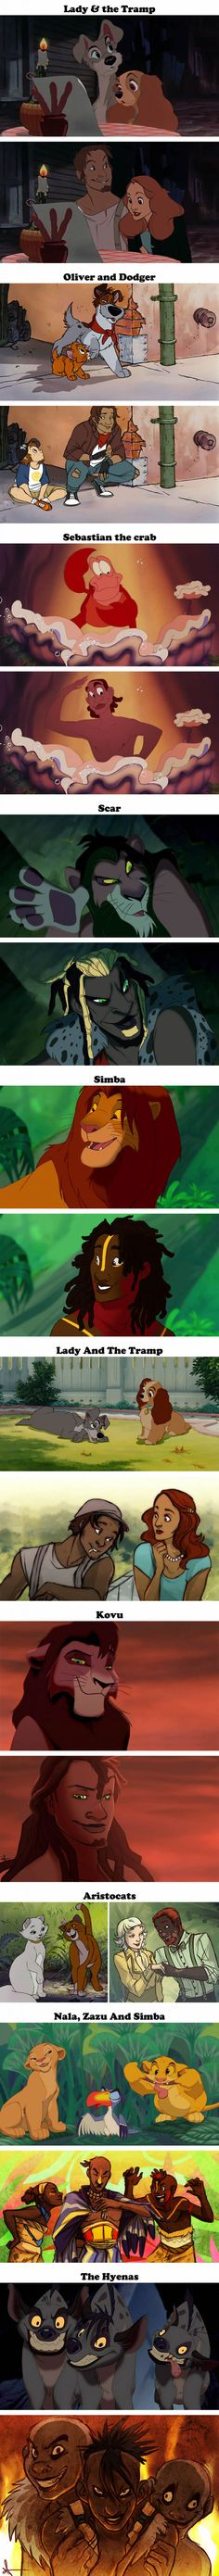 Famous Disney Characters As Ethnically Correct Humans (by pugletto) - 9GAG